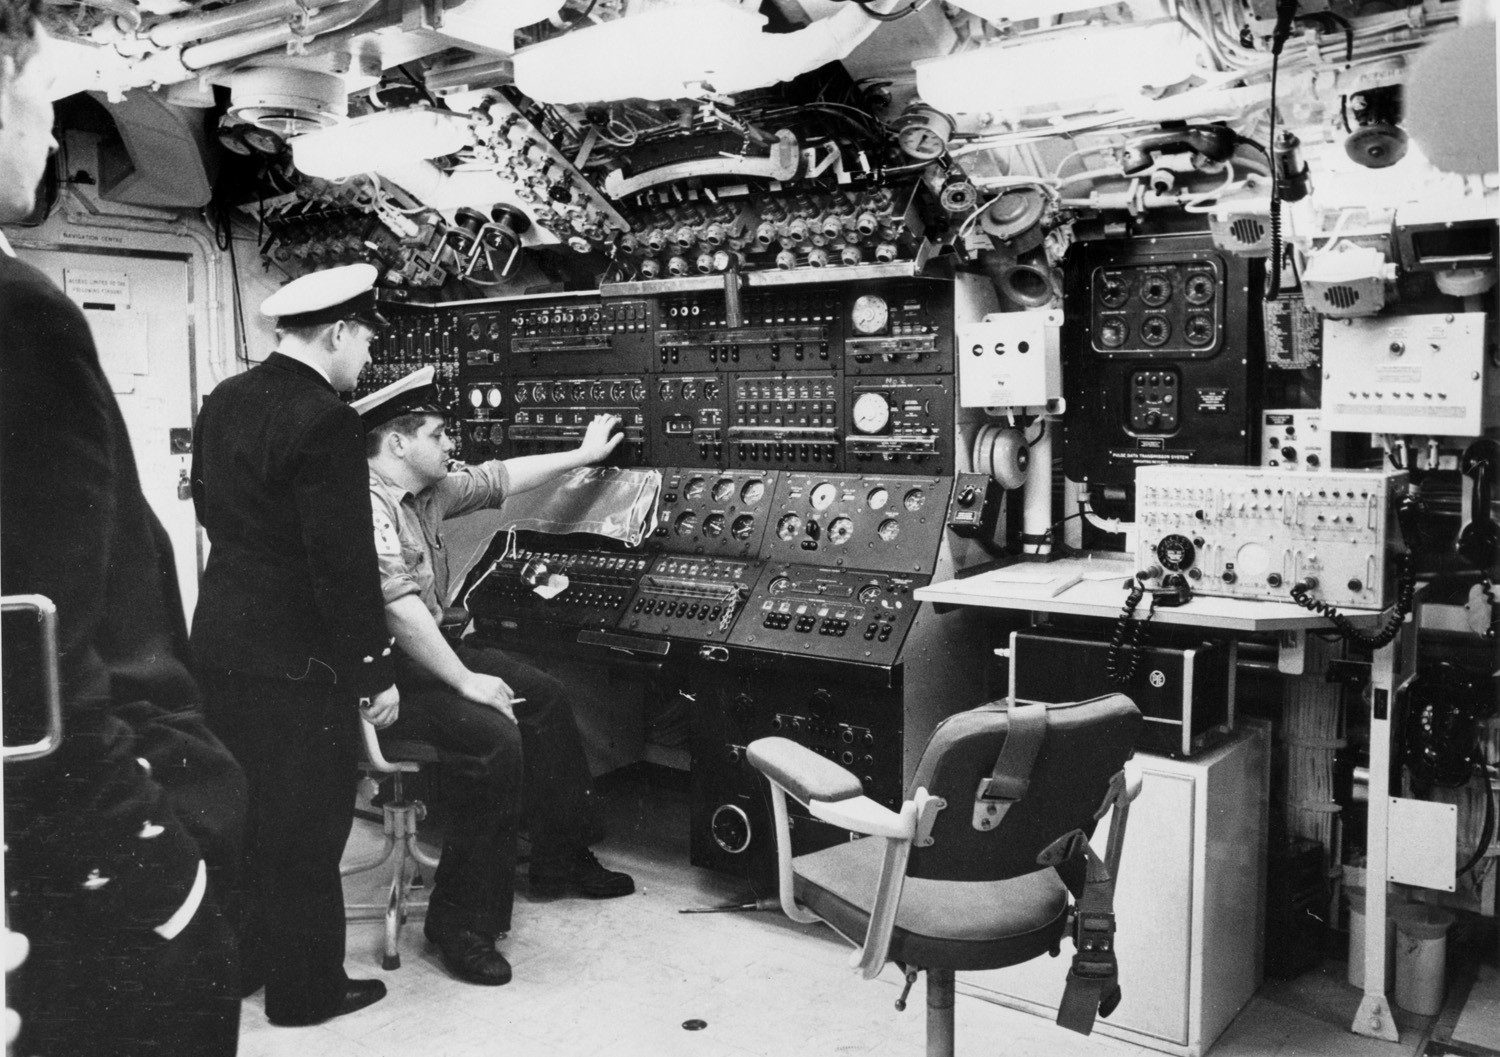 HMS Resolution's Control Room